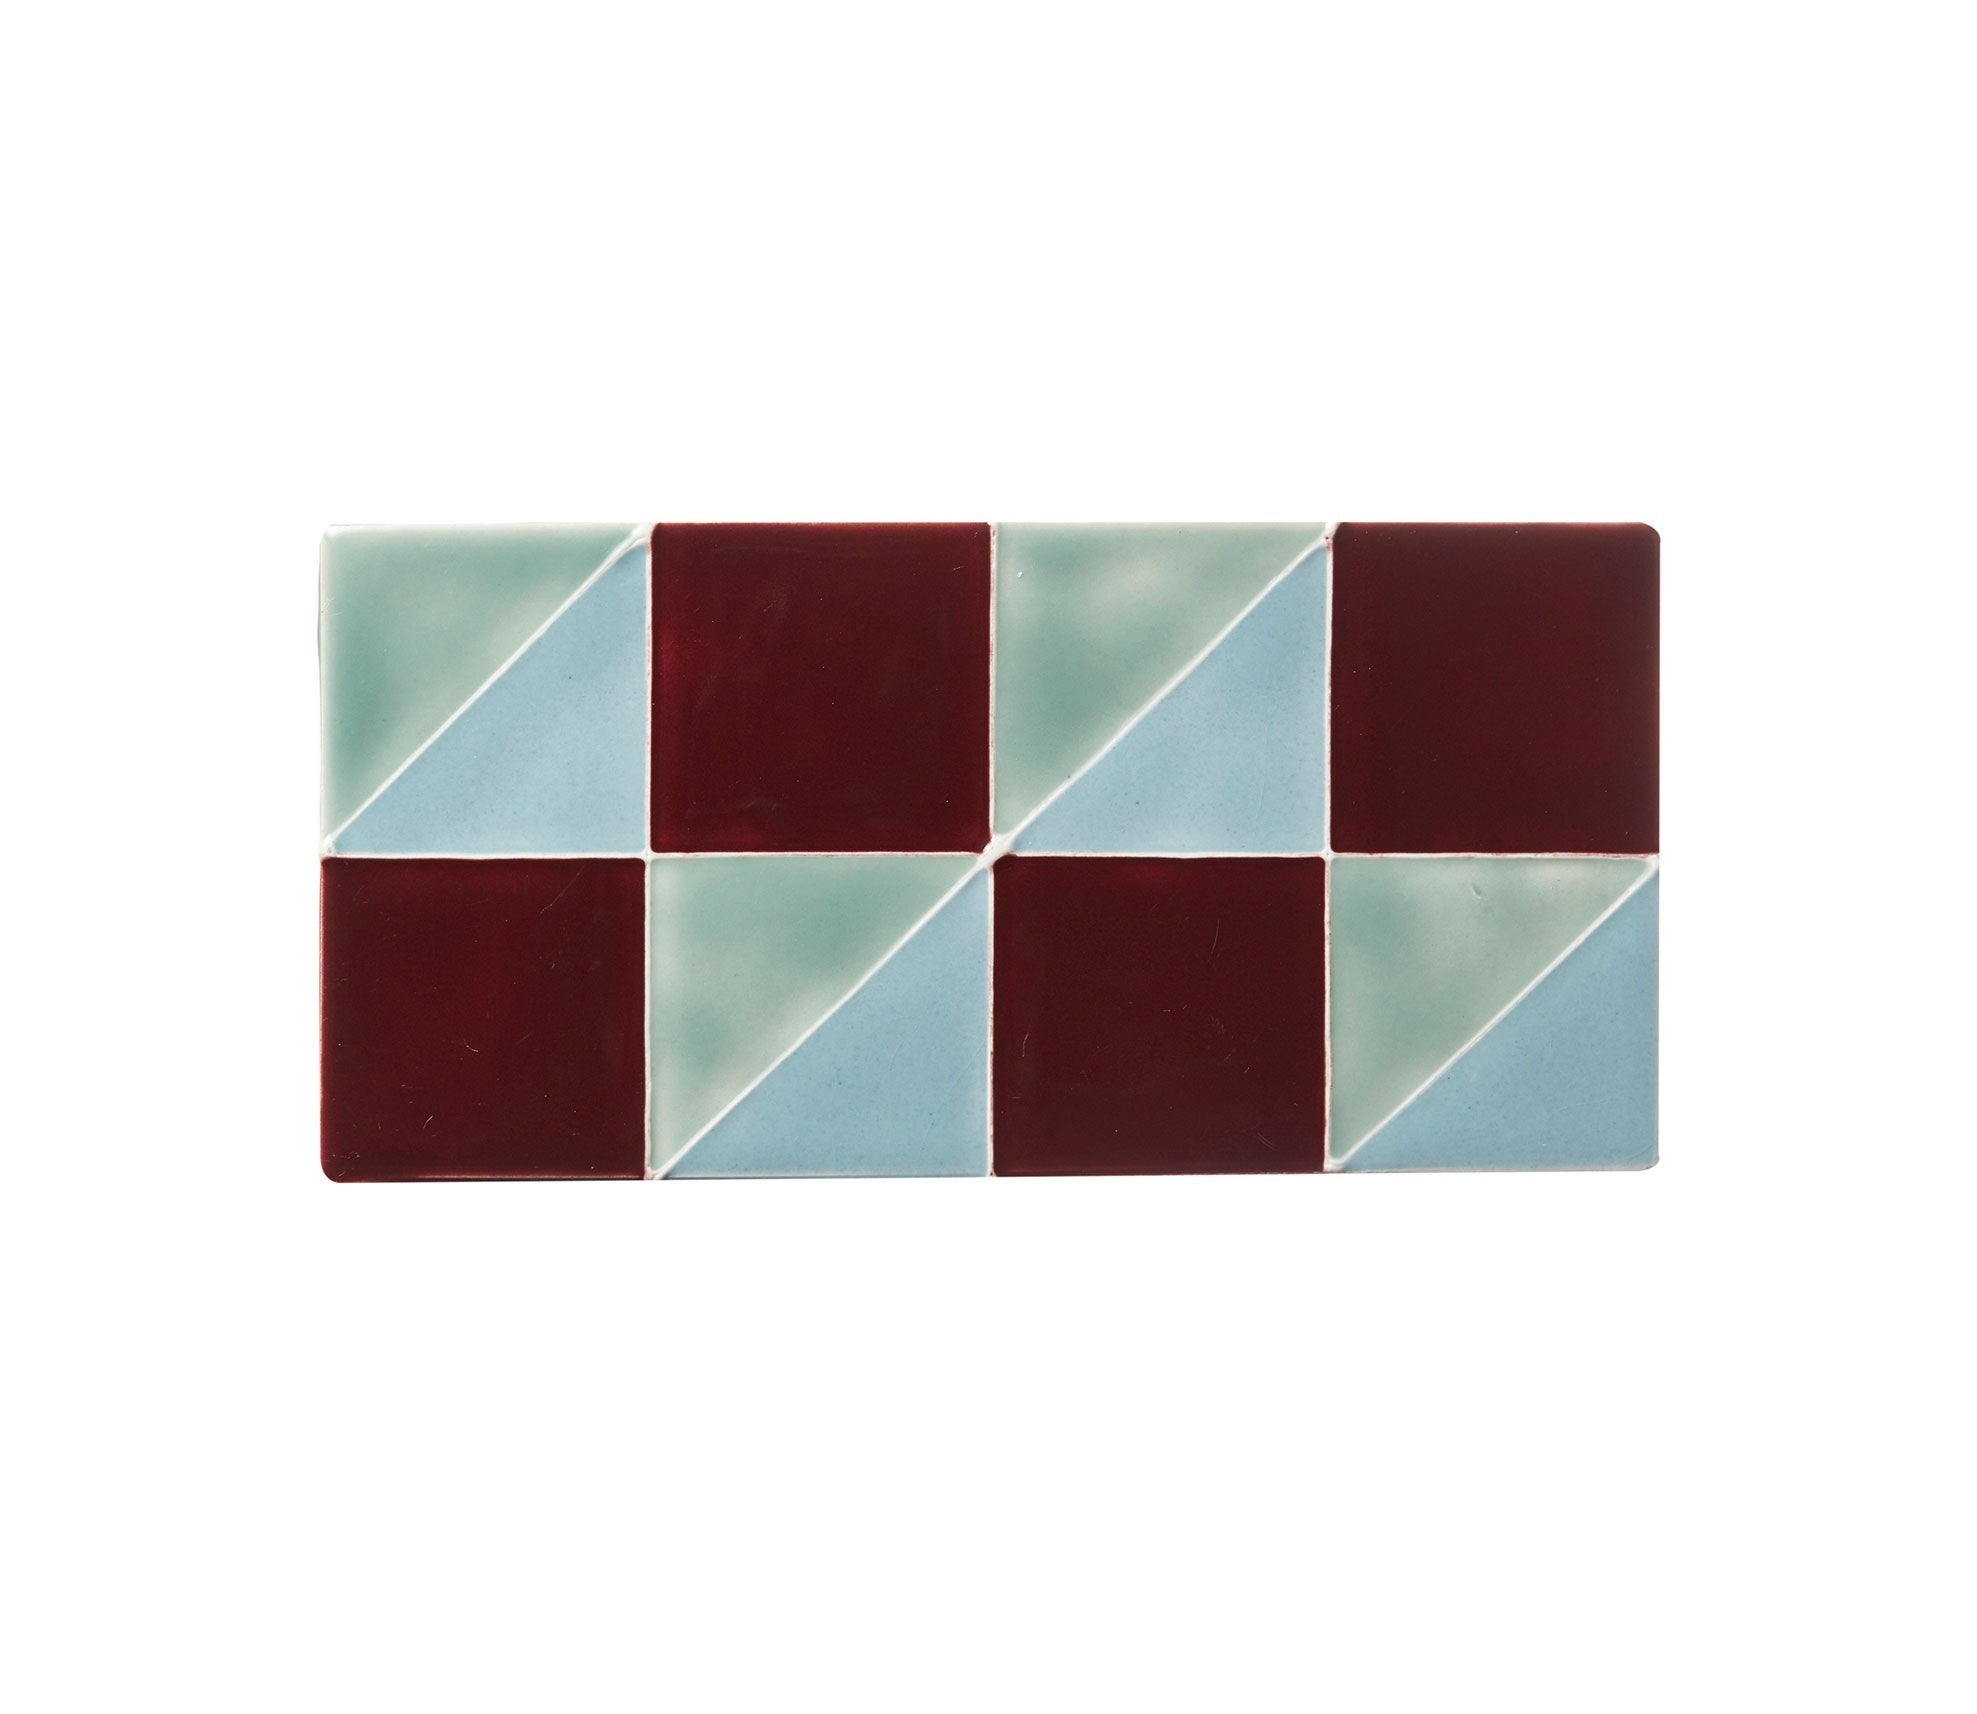 Hanley Tube Lined Decorative Tiles Product Image 17